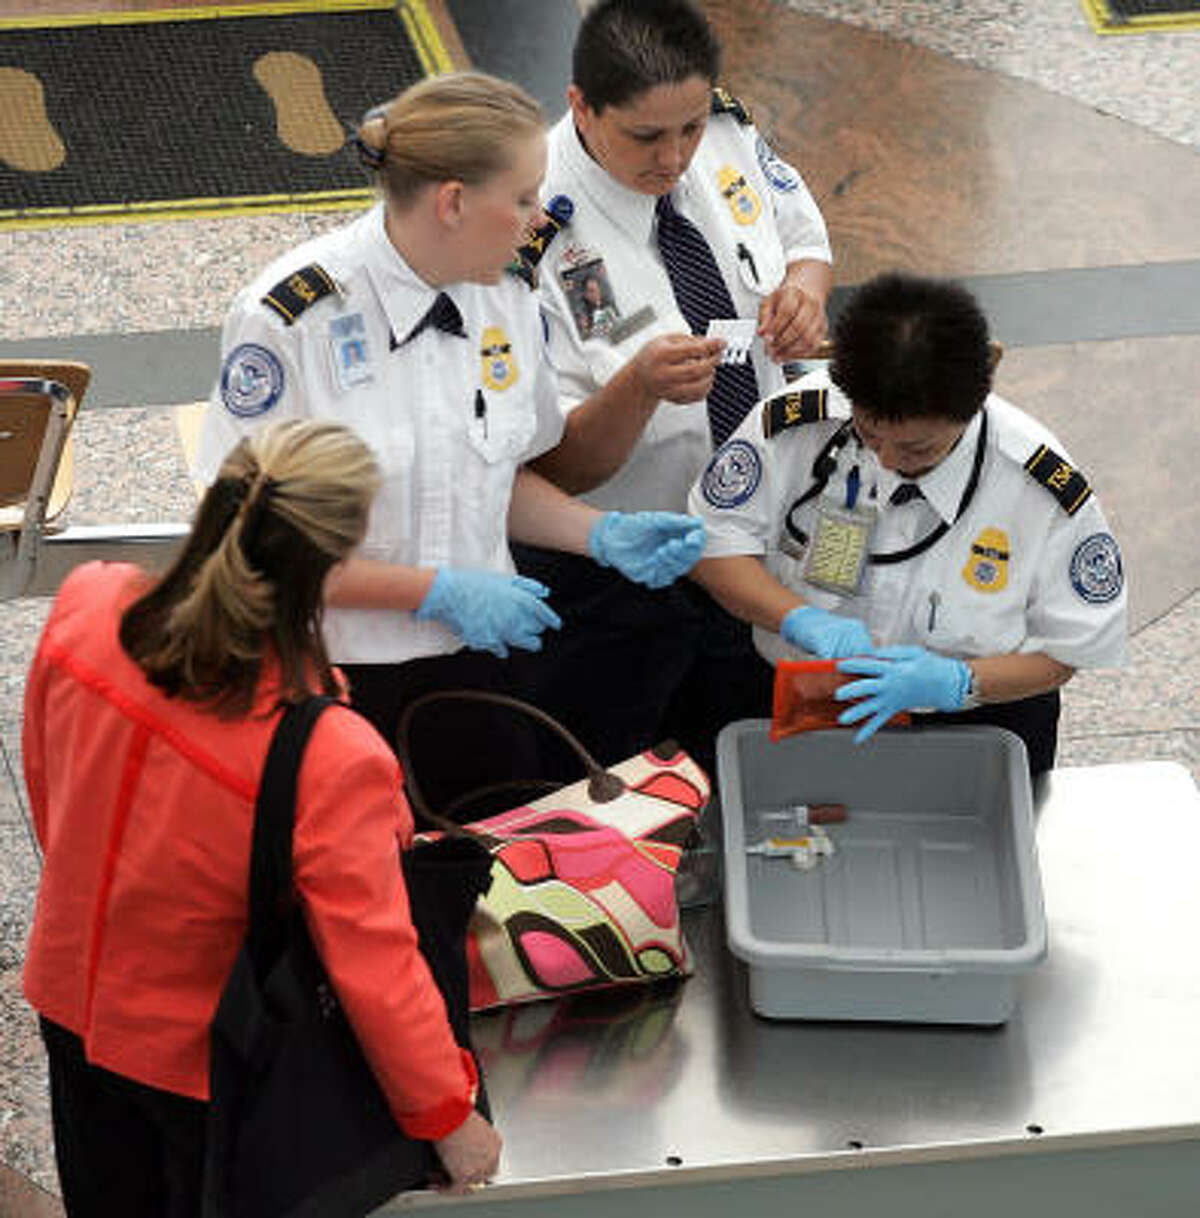 Security screeners remove liquid items from a passenger's luggage Sunday at Denver International Airport. The TSA said changes it made Sunday were based on feedback from security officers and the public.